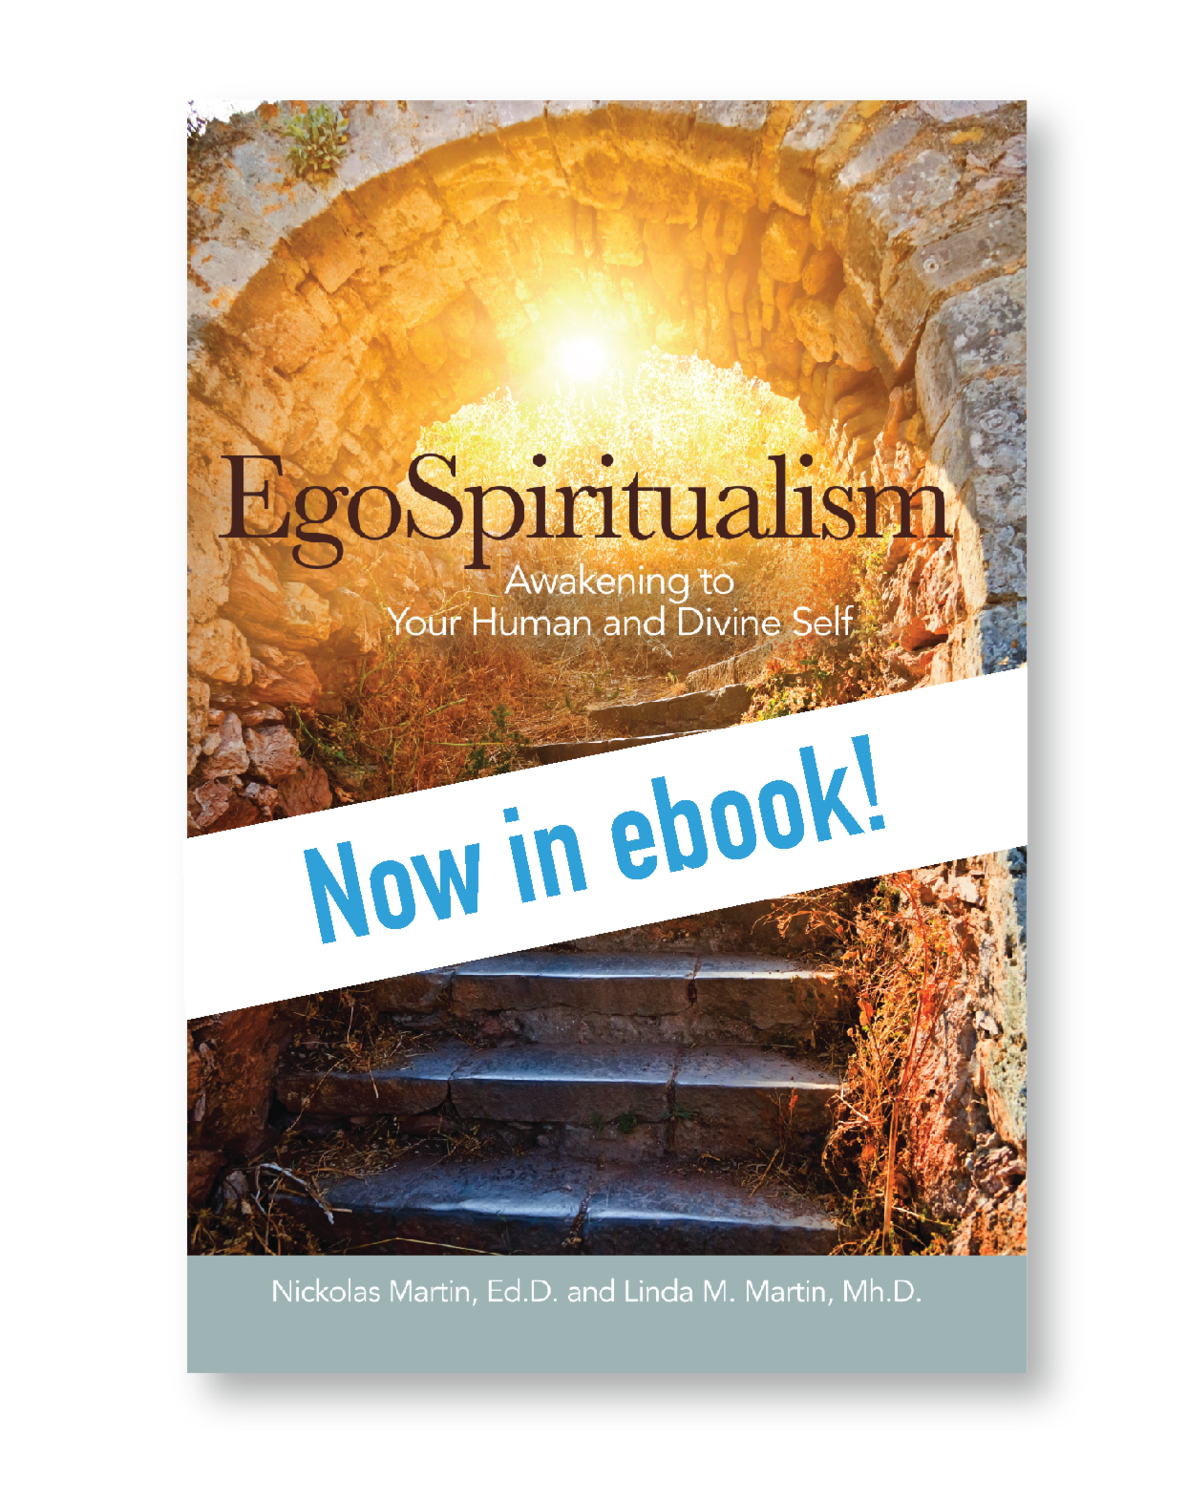 EgoSpiritualism: Awakening to Your Human and Divine Self